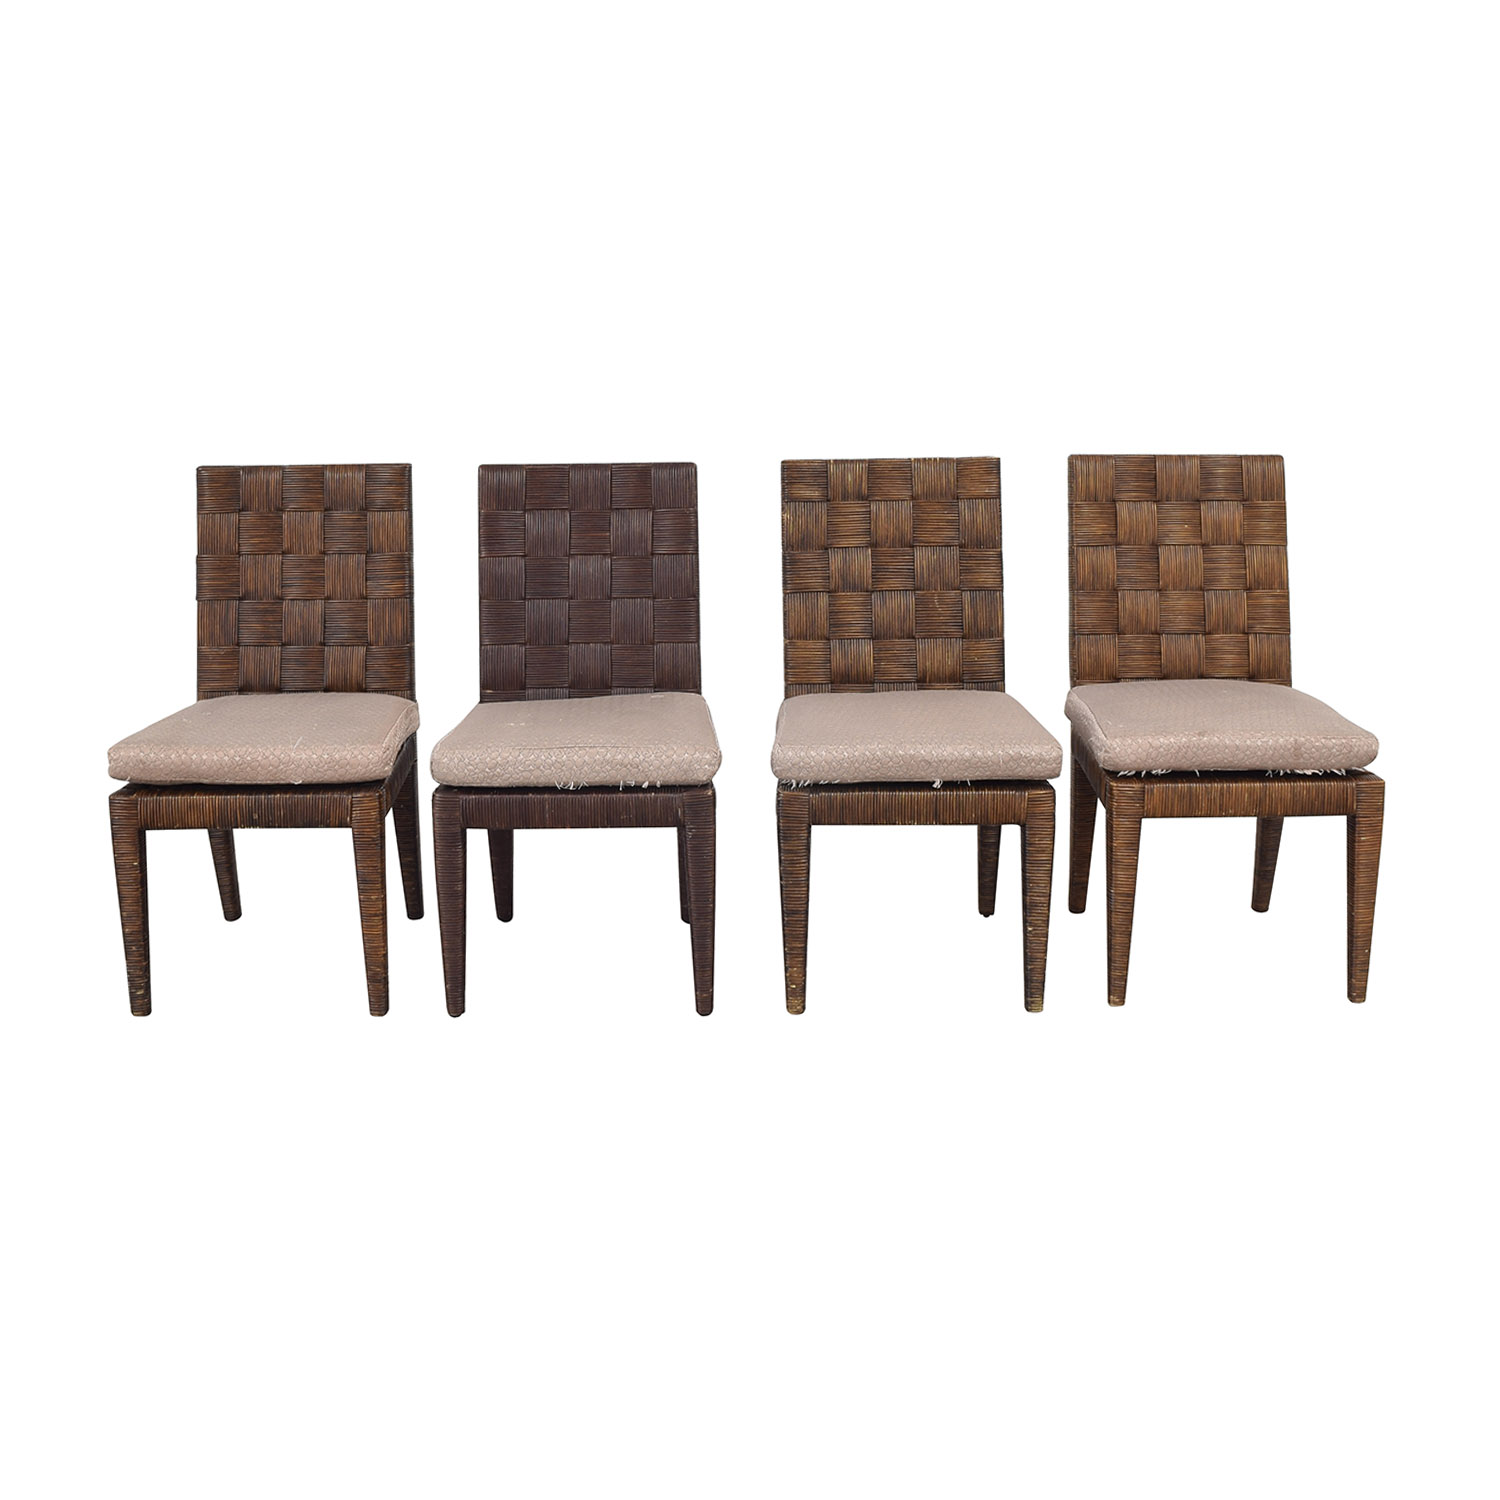 Donghia Donghia John Hutton Block Island Side Dining Chairs on sale